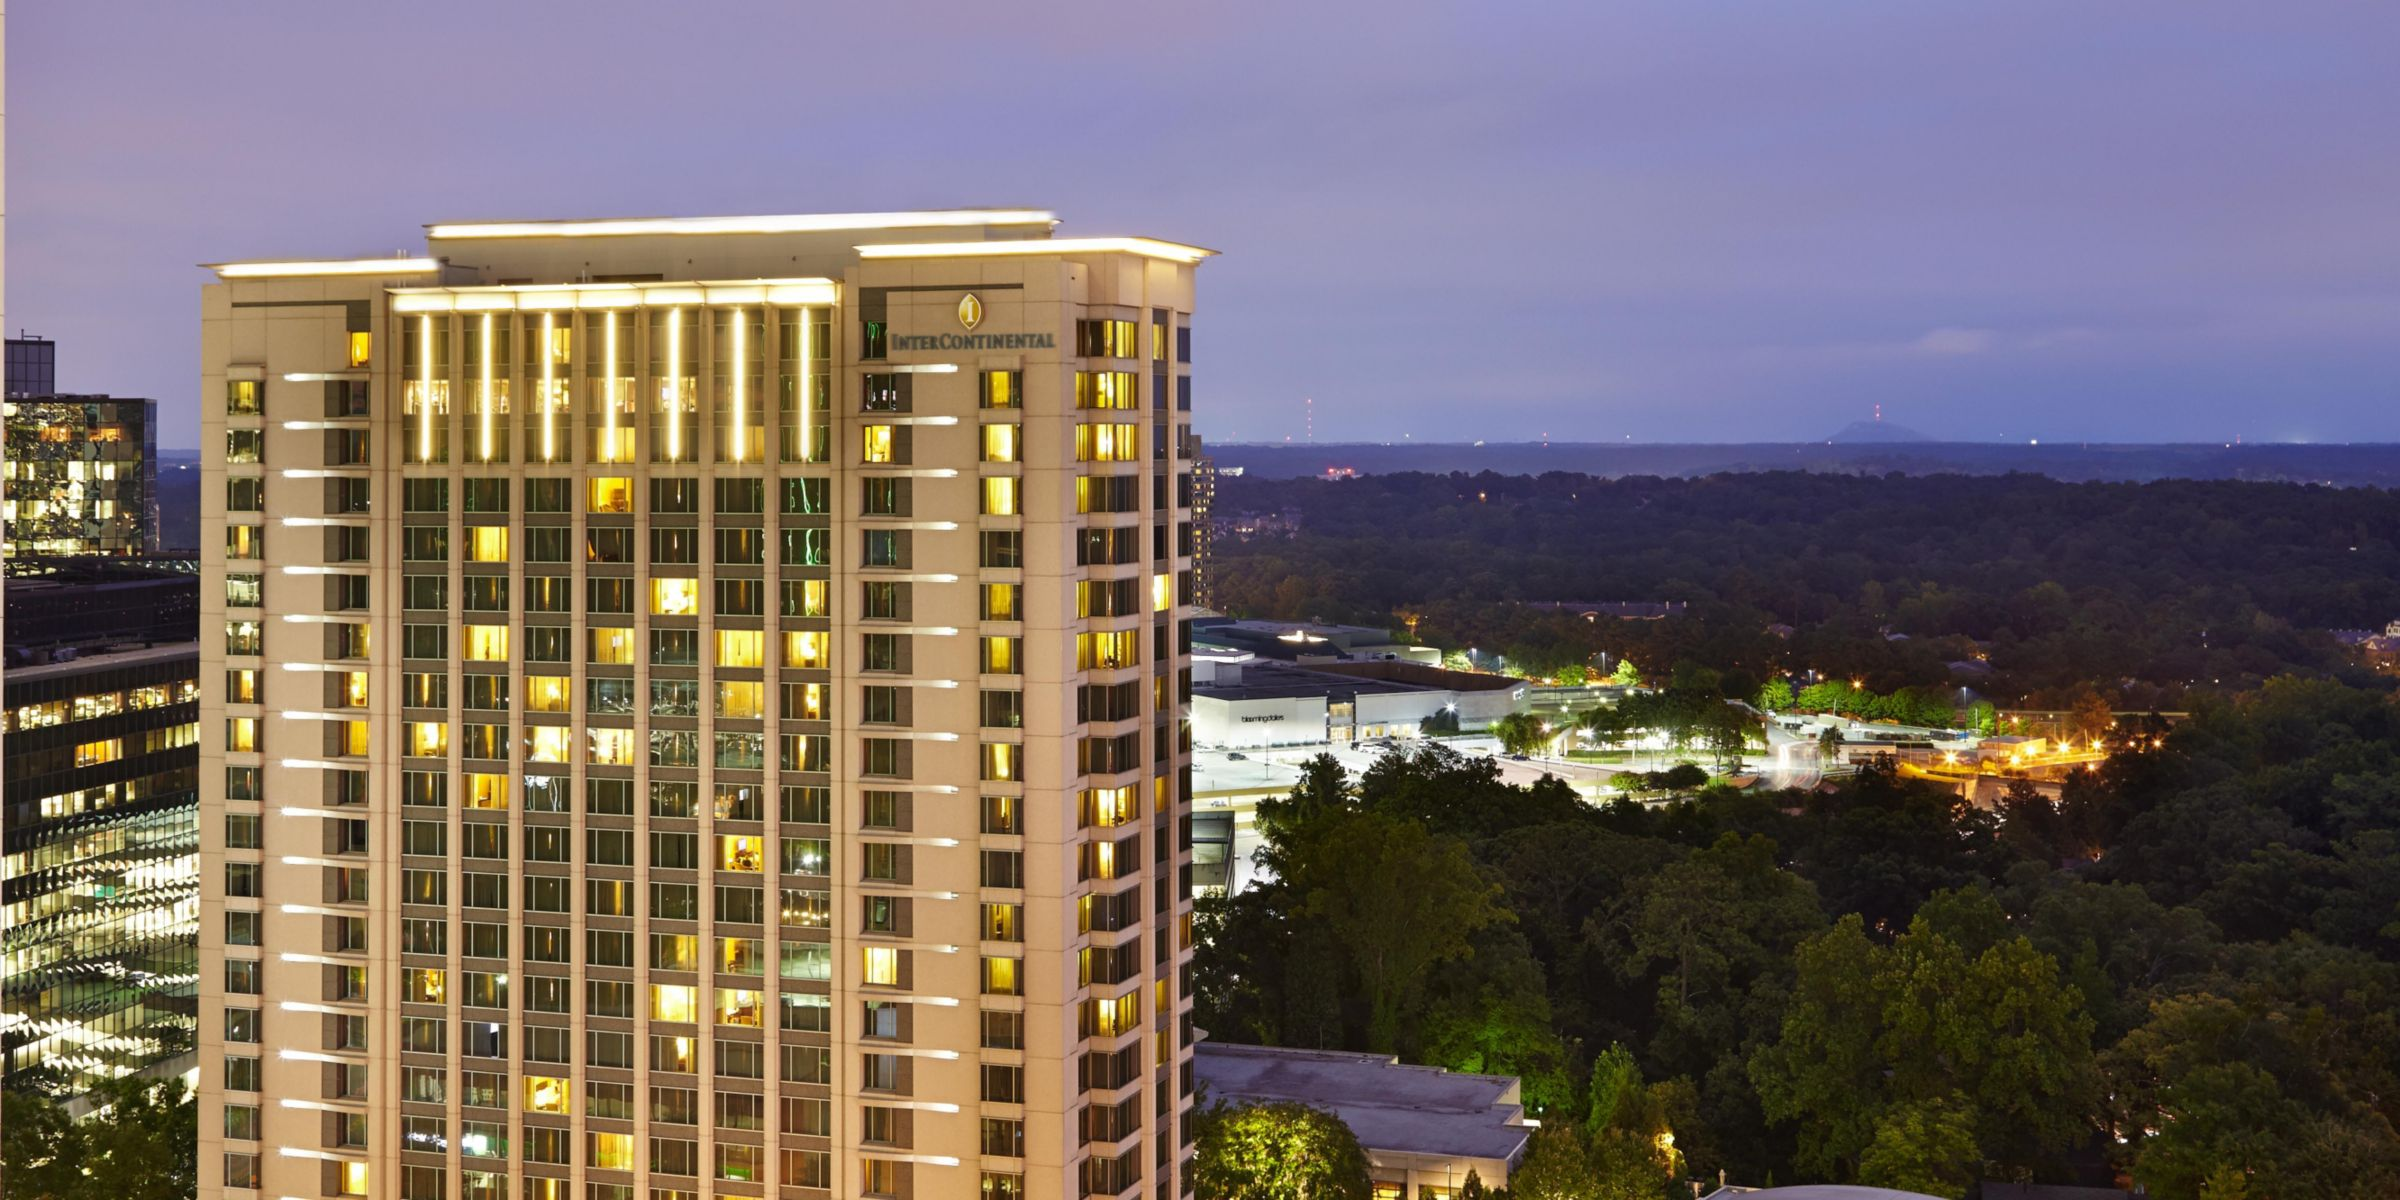 InterContinental Buckhead Atlanta - Luxushotels in Atlanta, Georgia